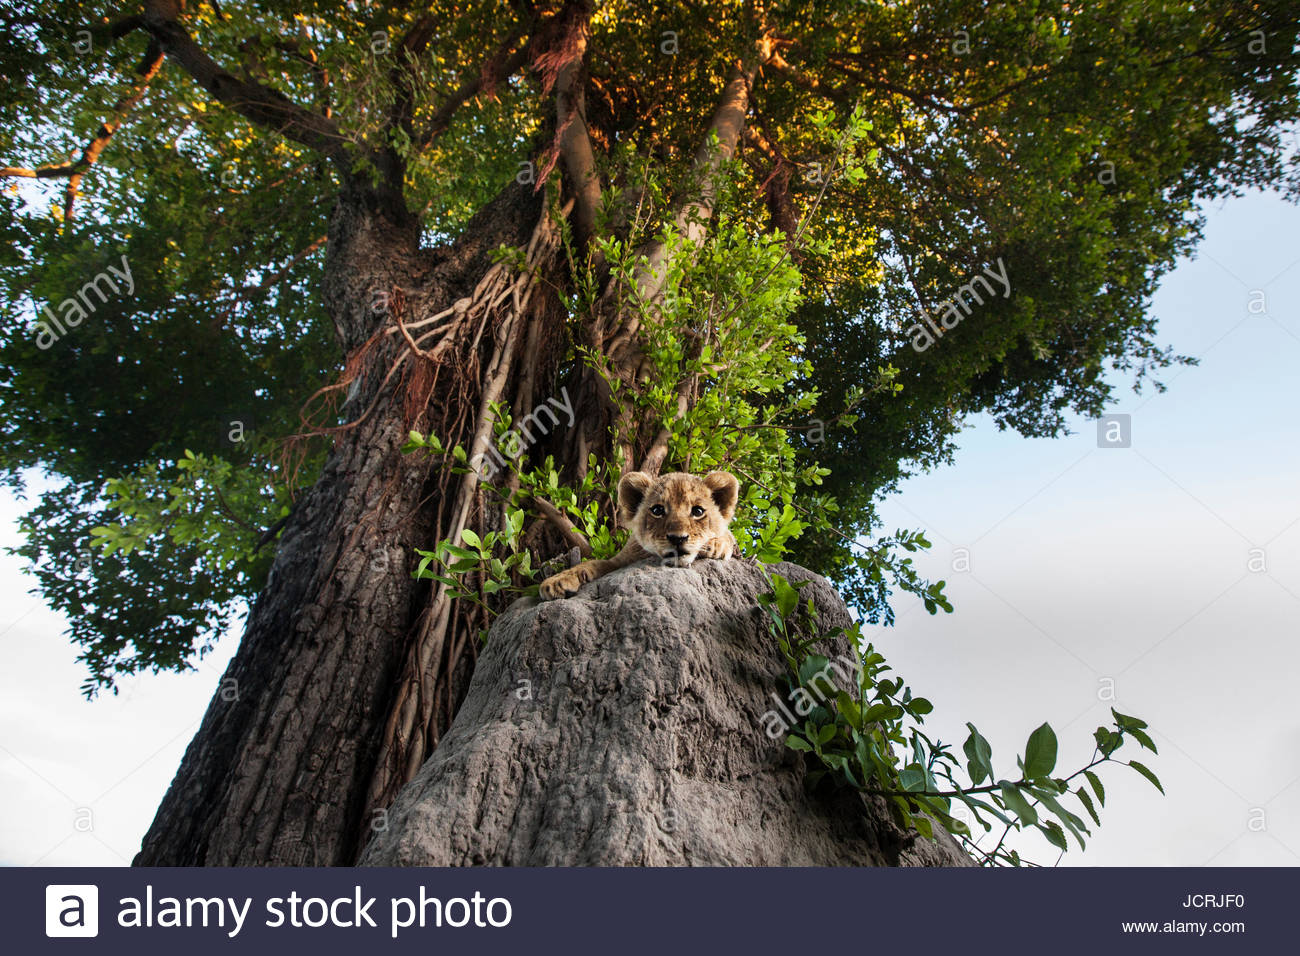 Un lion, Panthera leo, reposant sur une fourmi colline sous un grand arbre. Photo Stock